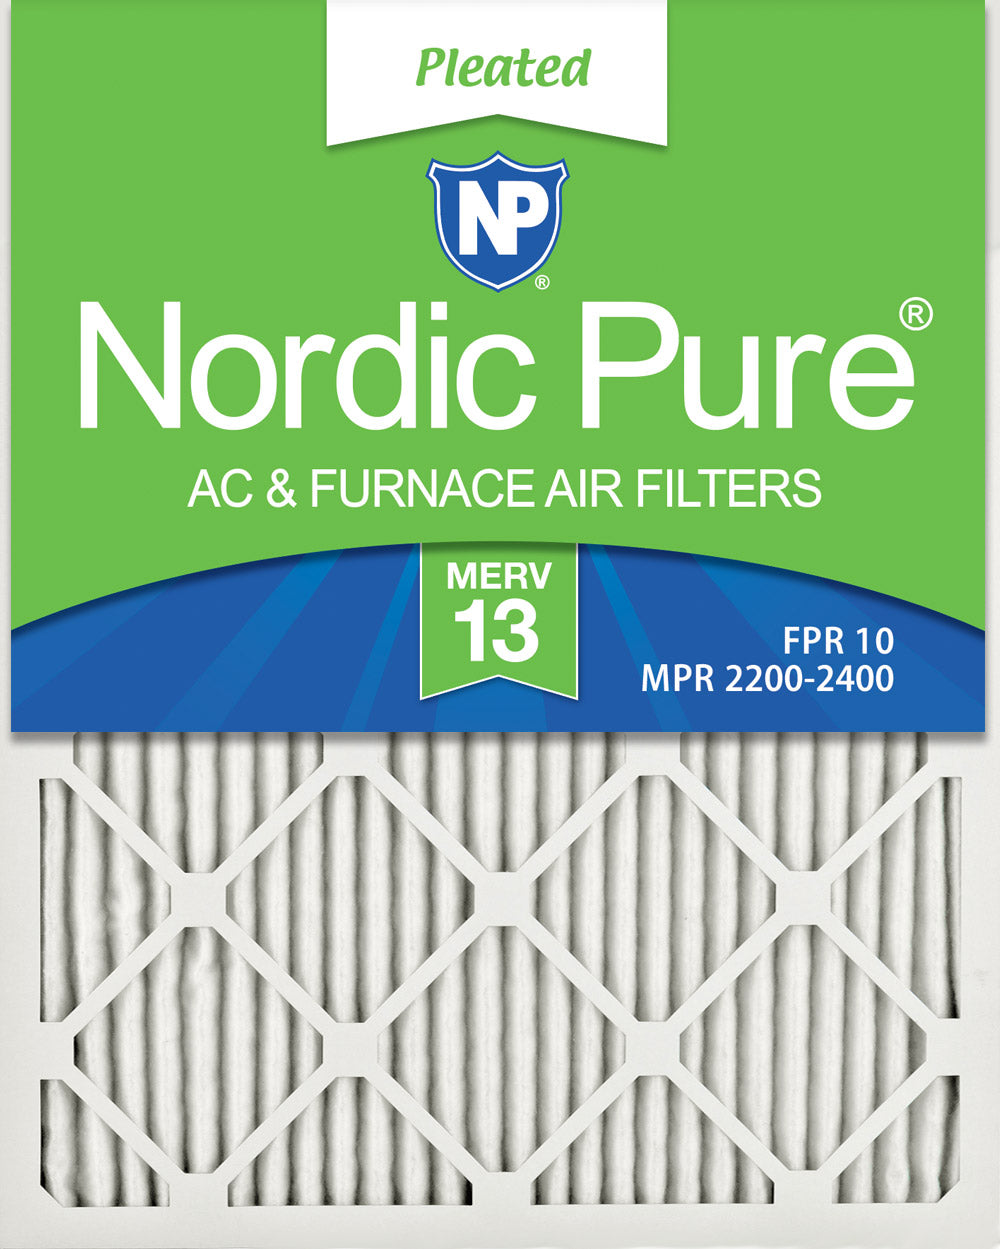 18x20x1 Pleated MERV 13 Air Filters 3 Pack